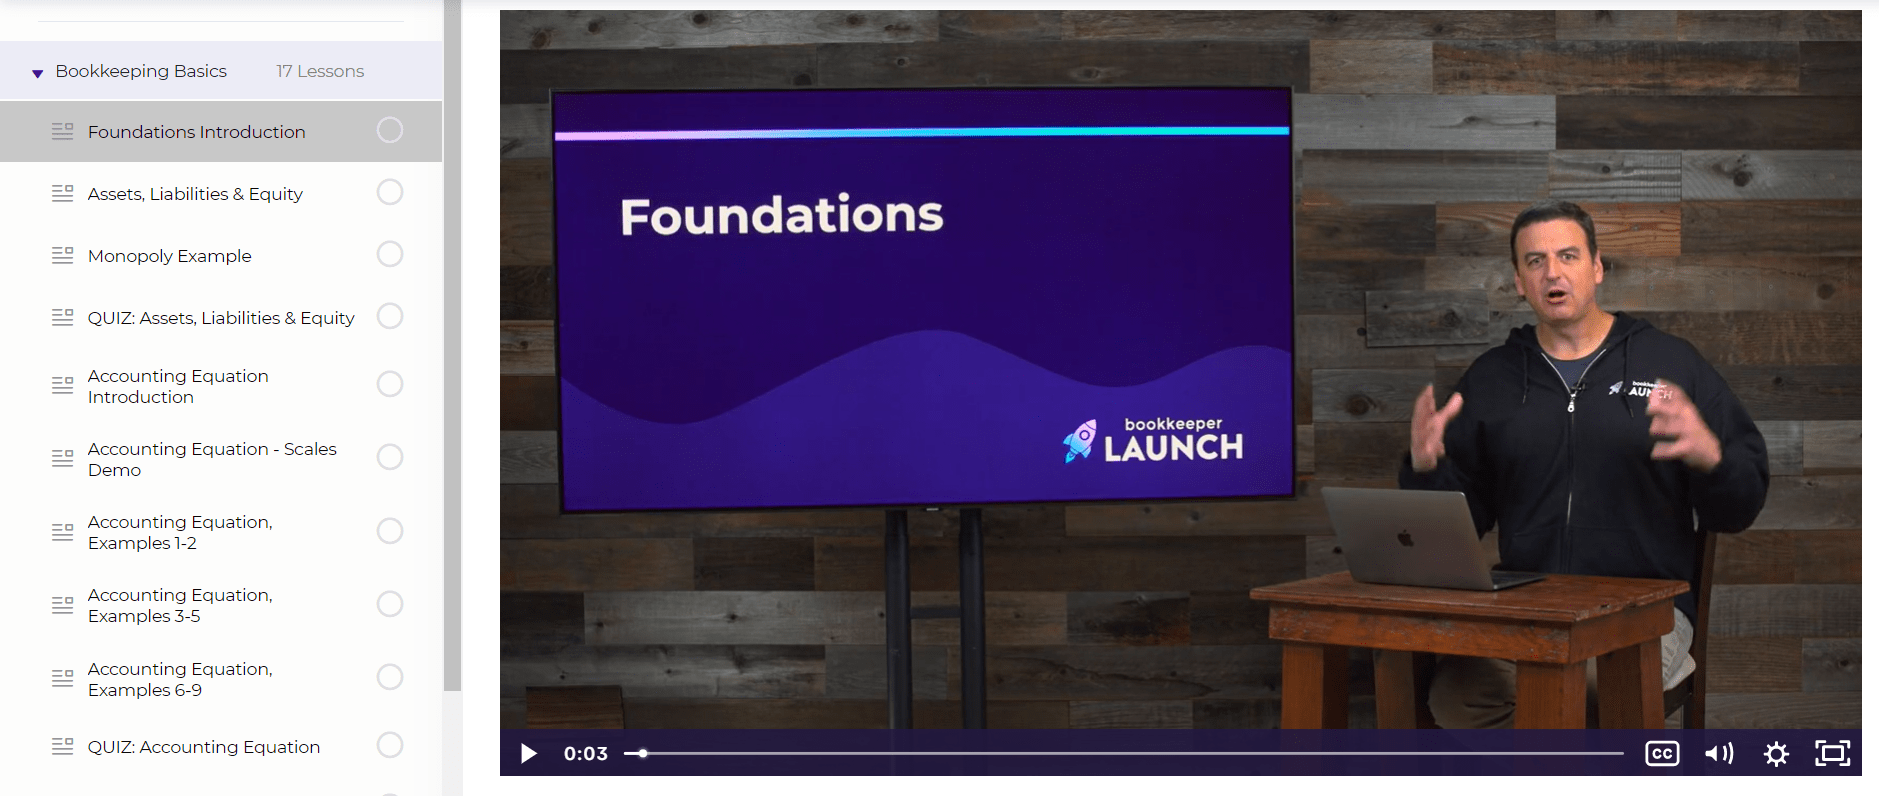 Bookkeeper Launch Course Foundation Intro